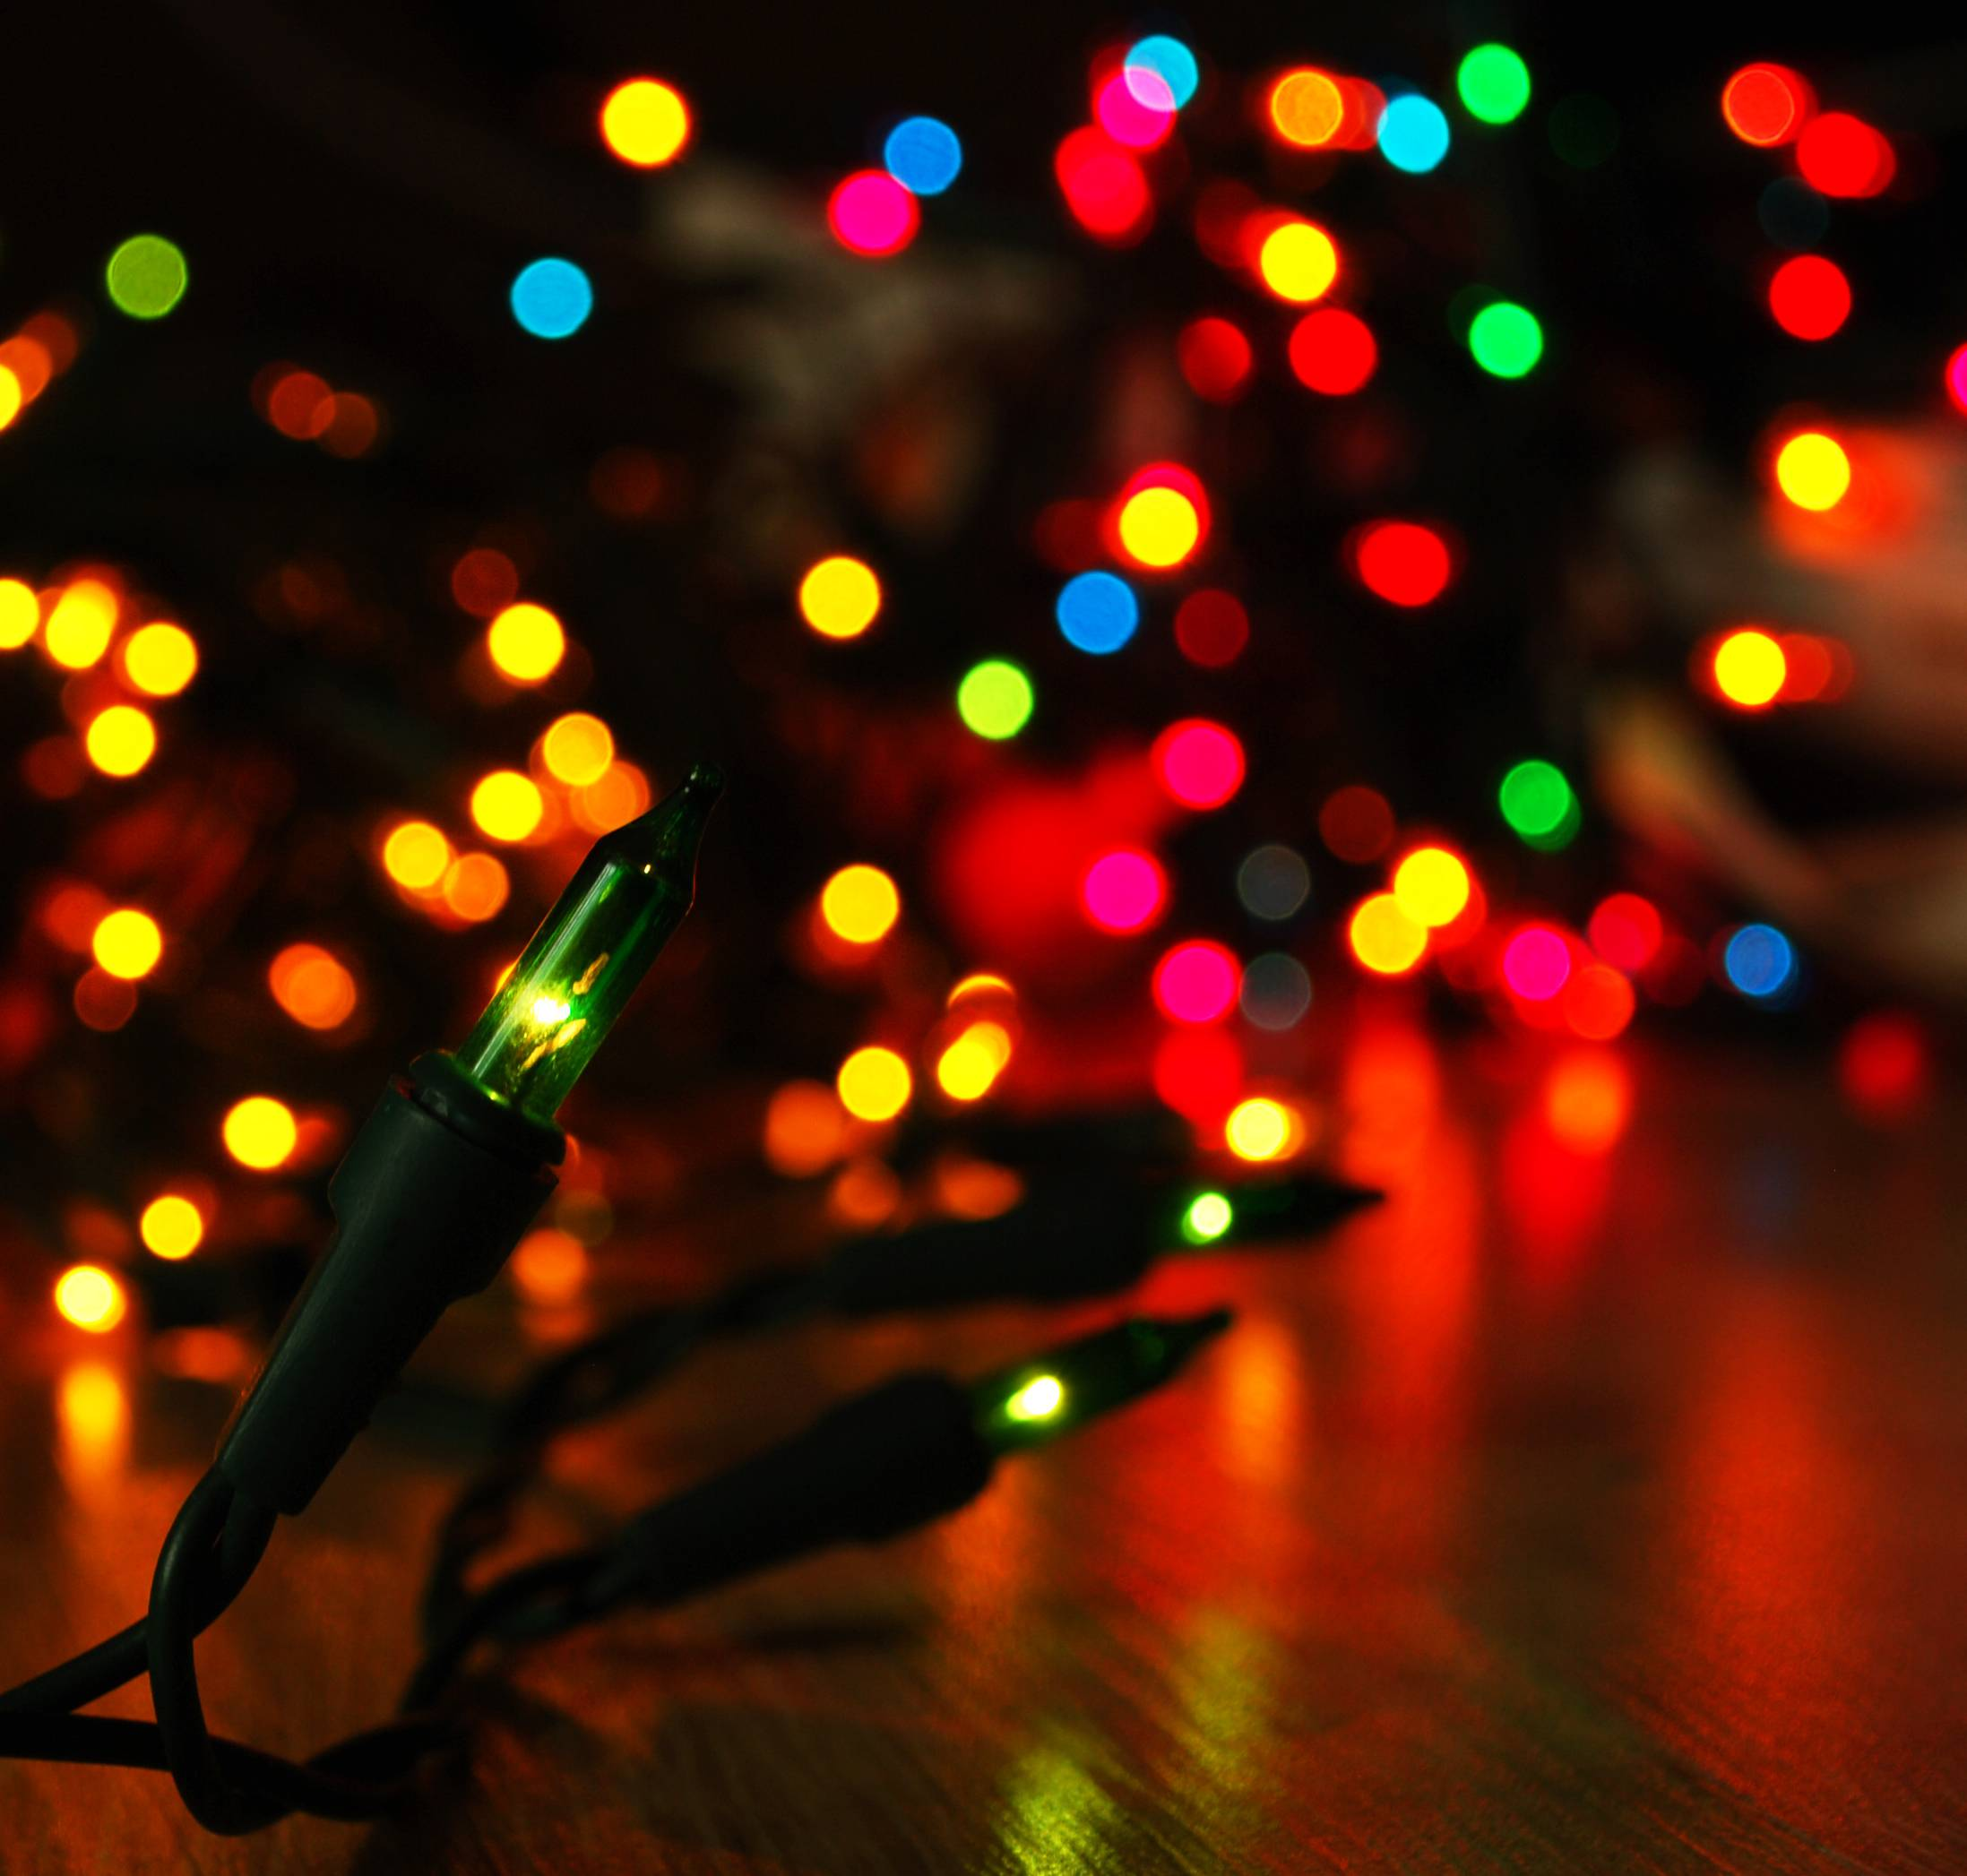 Christmas lights wallpaper - Wallpapers For Christmas Lights Background Wallpaper